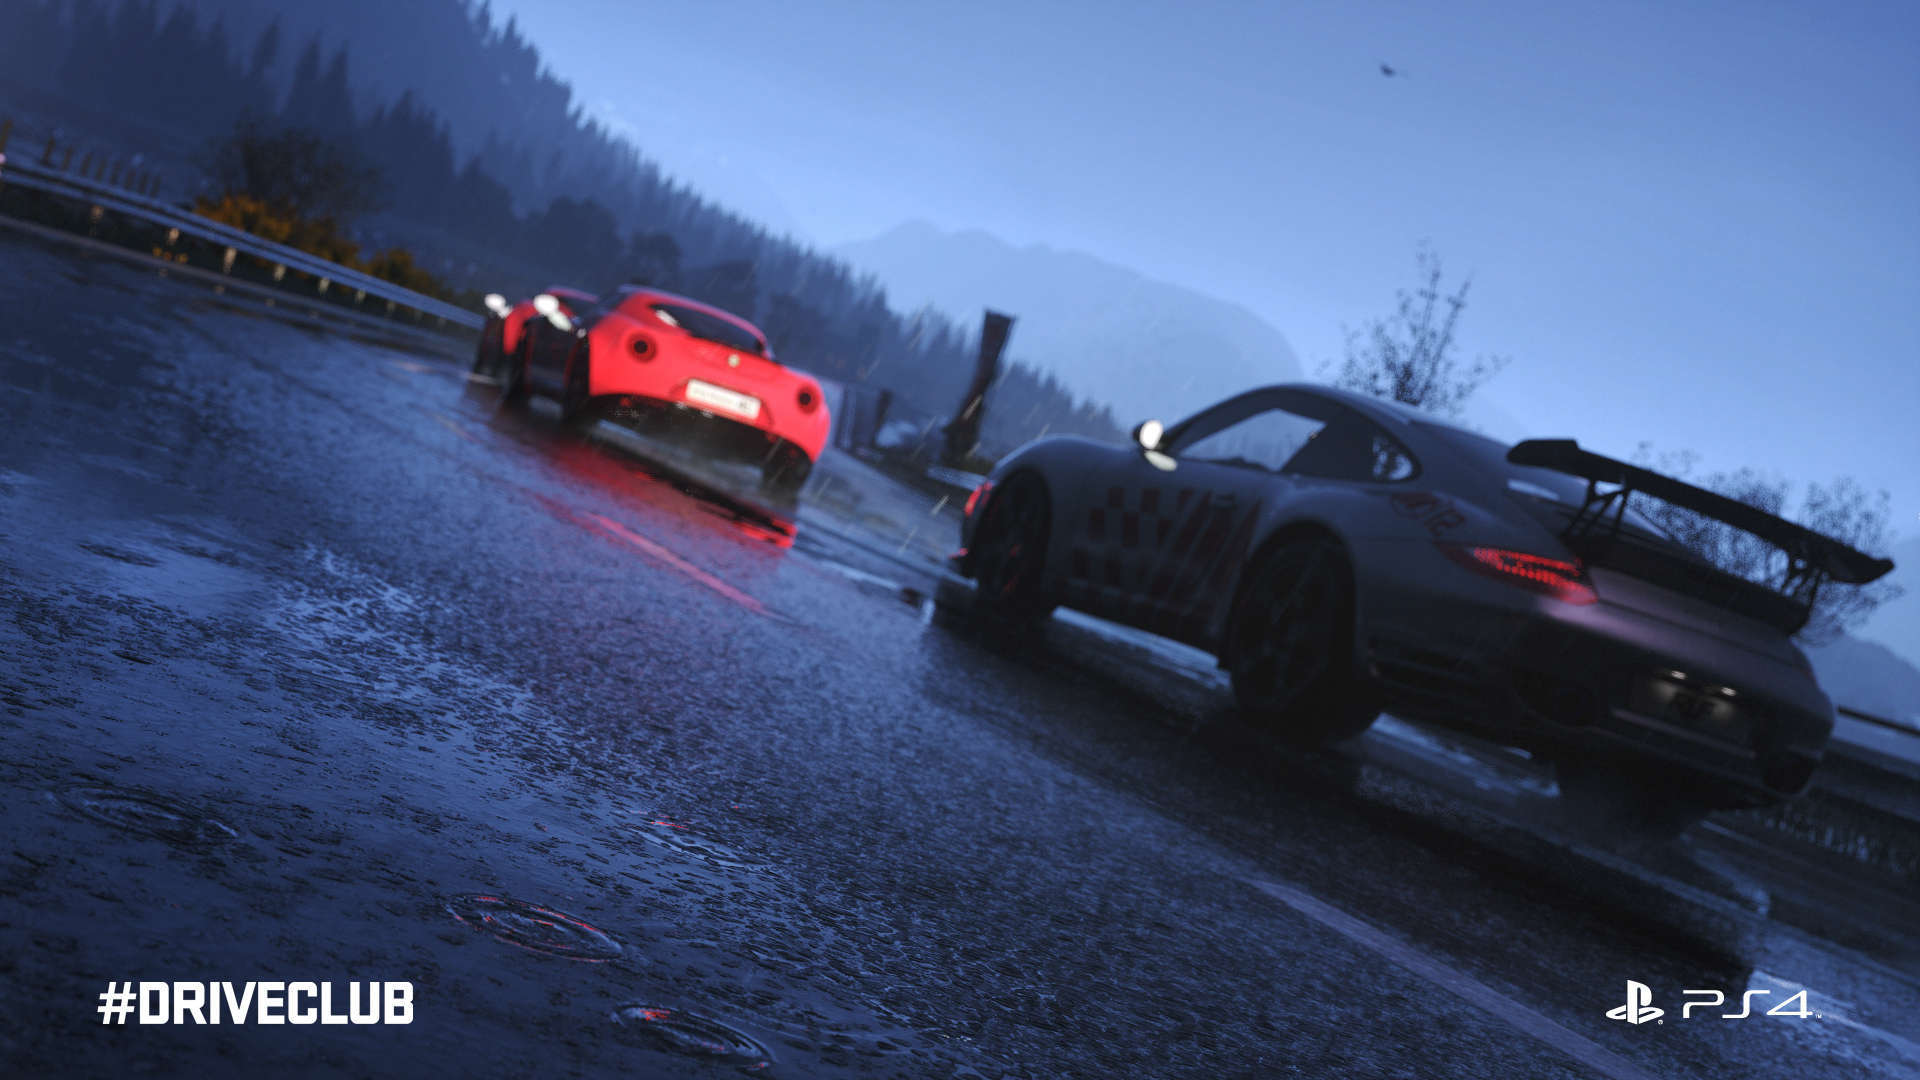 10 hd driveclub wallpapers hdwallsource 10 hd driveclub wallpapers voltagebd Choice Image